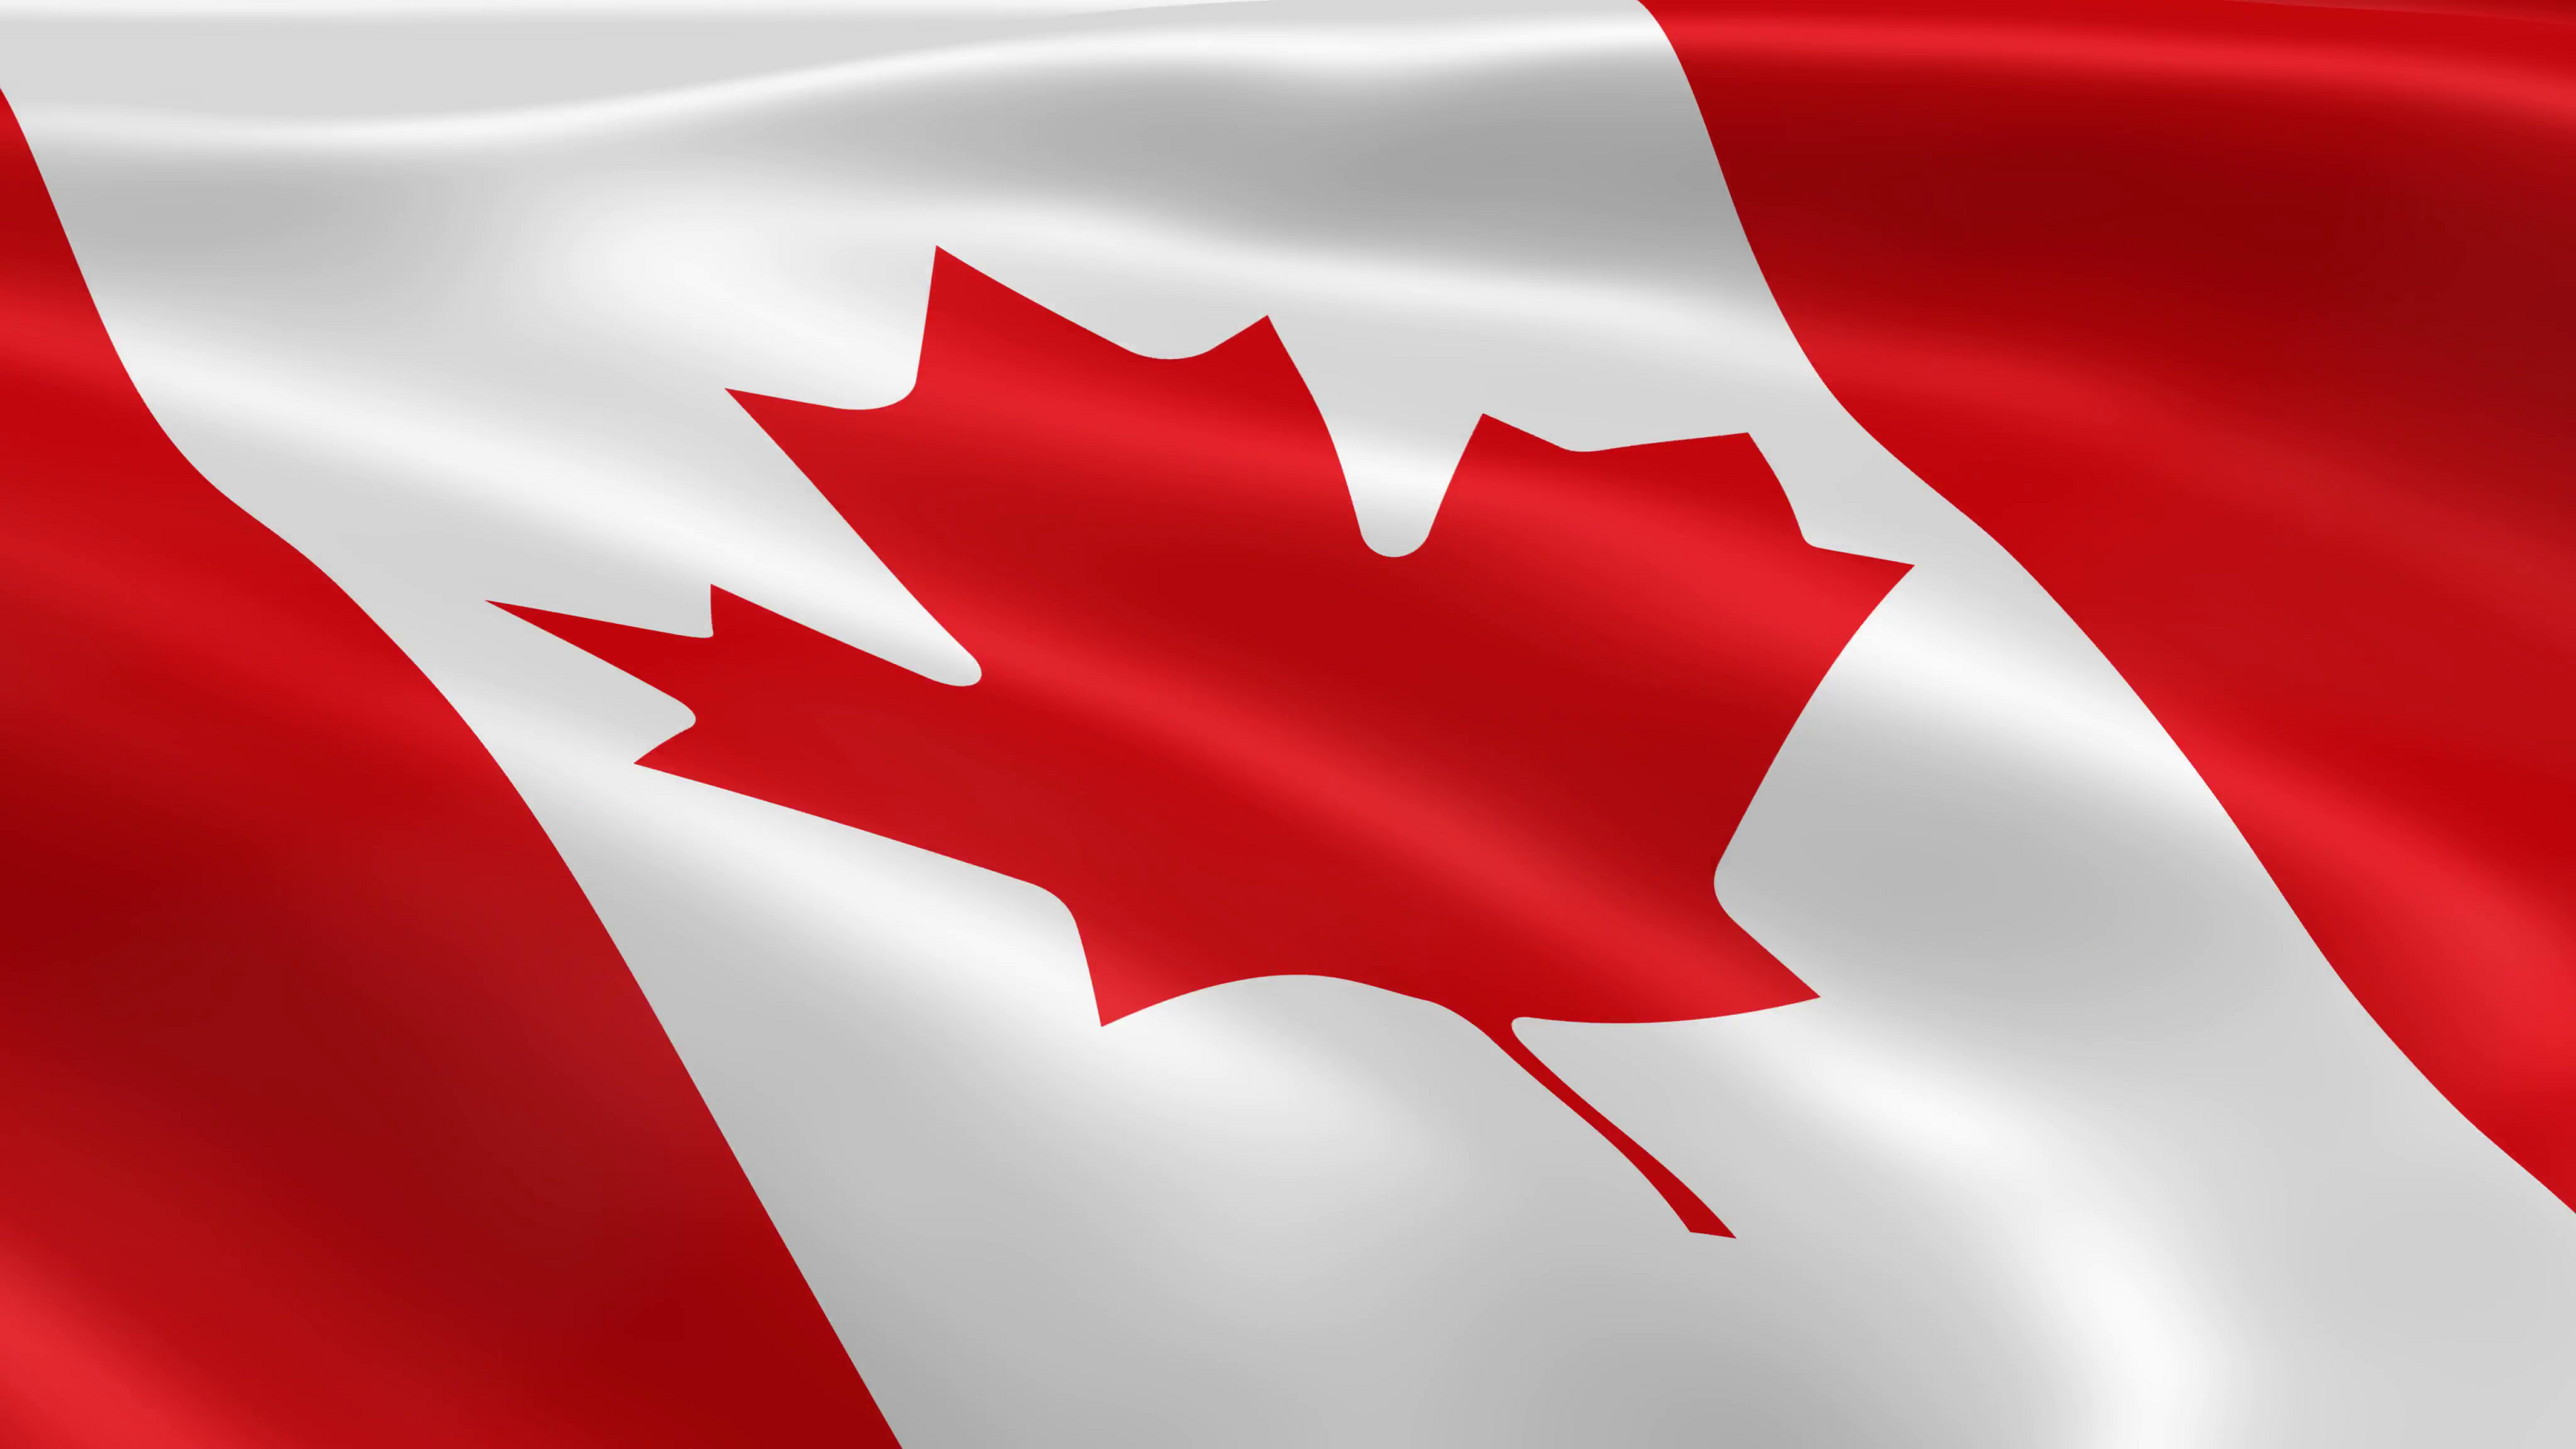 Canada Flag Wallpaper 13